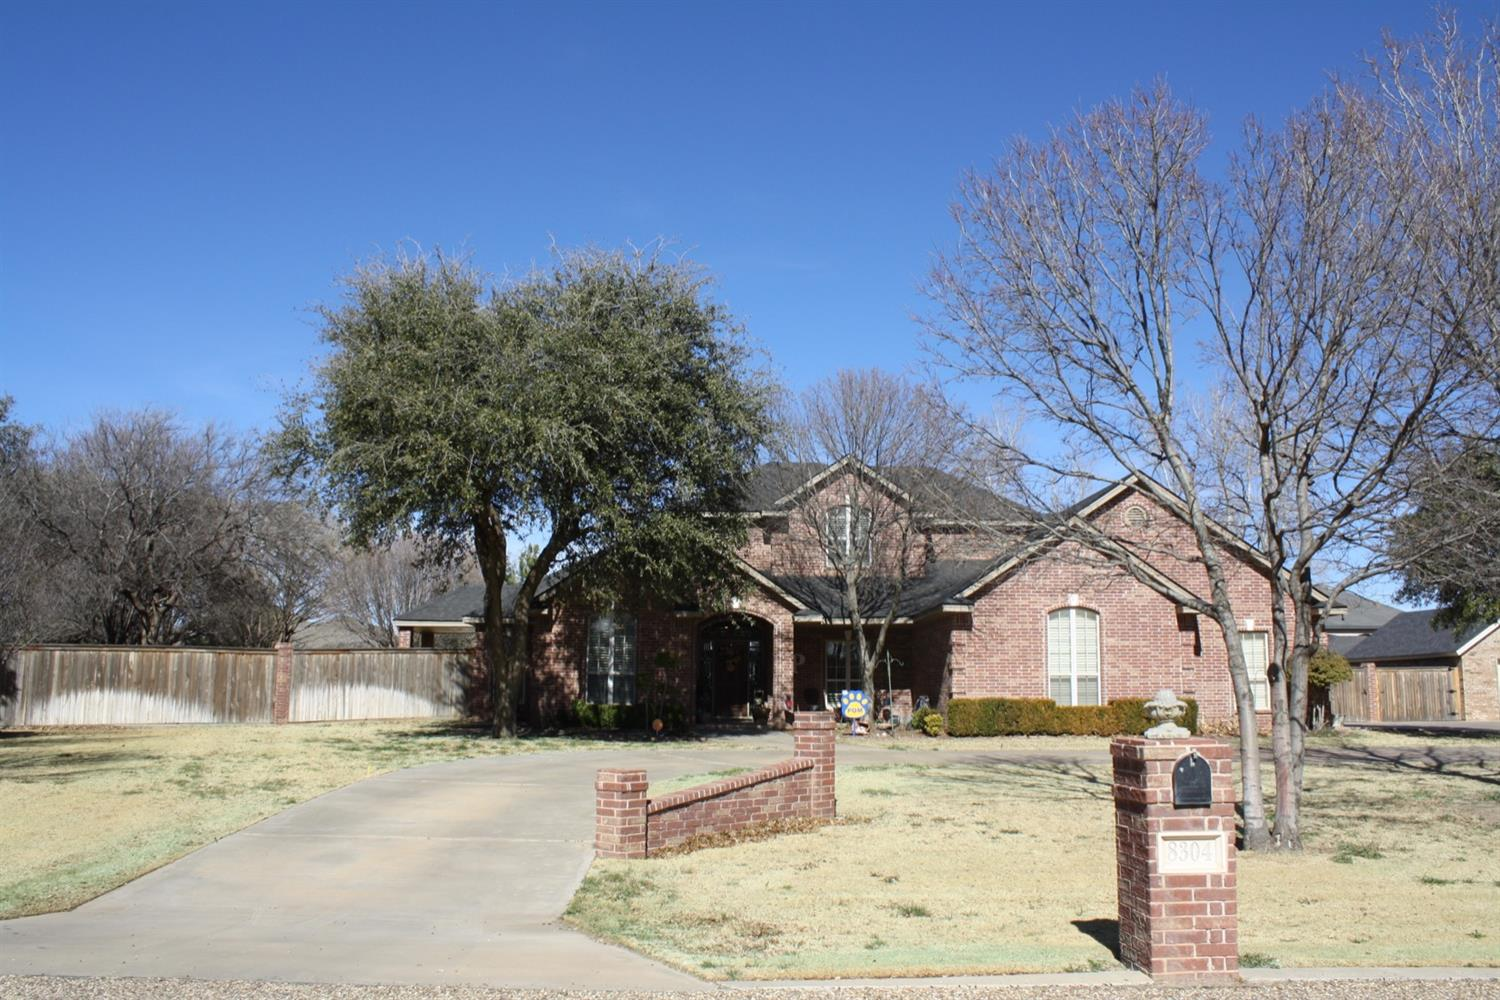 8304 County Road 6915, Lubbock in Lubbock County, TX 79407 Home for Sale